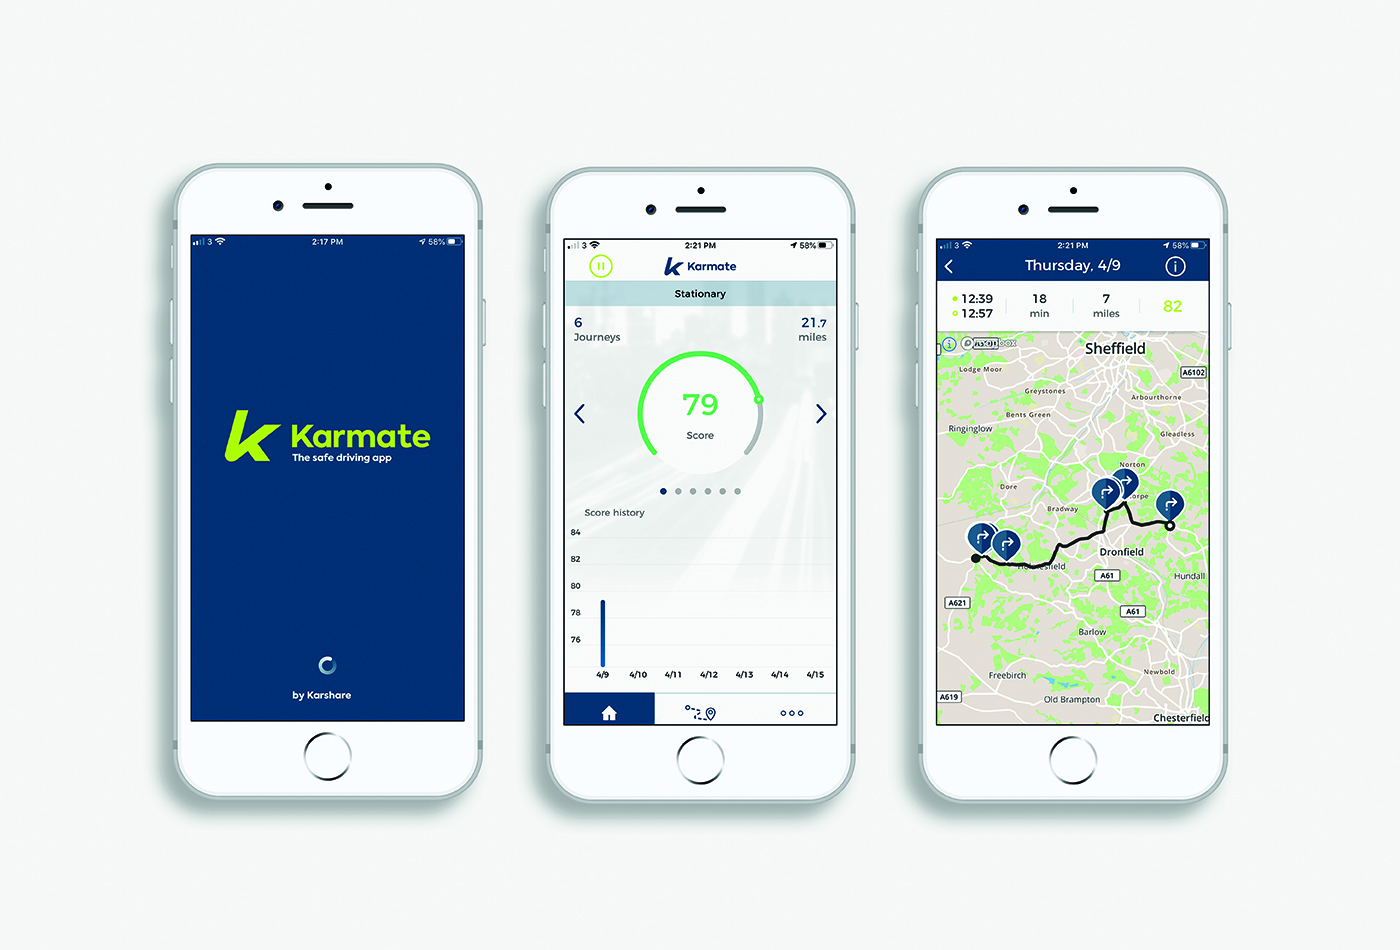 Karshare Release Karmate App, Using The Floow's FloowDrive Solution, as Part of Pioneering Project to Help Mobilise COVID-19 Workers